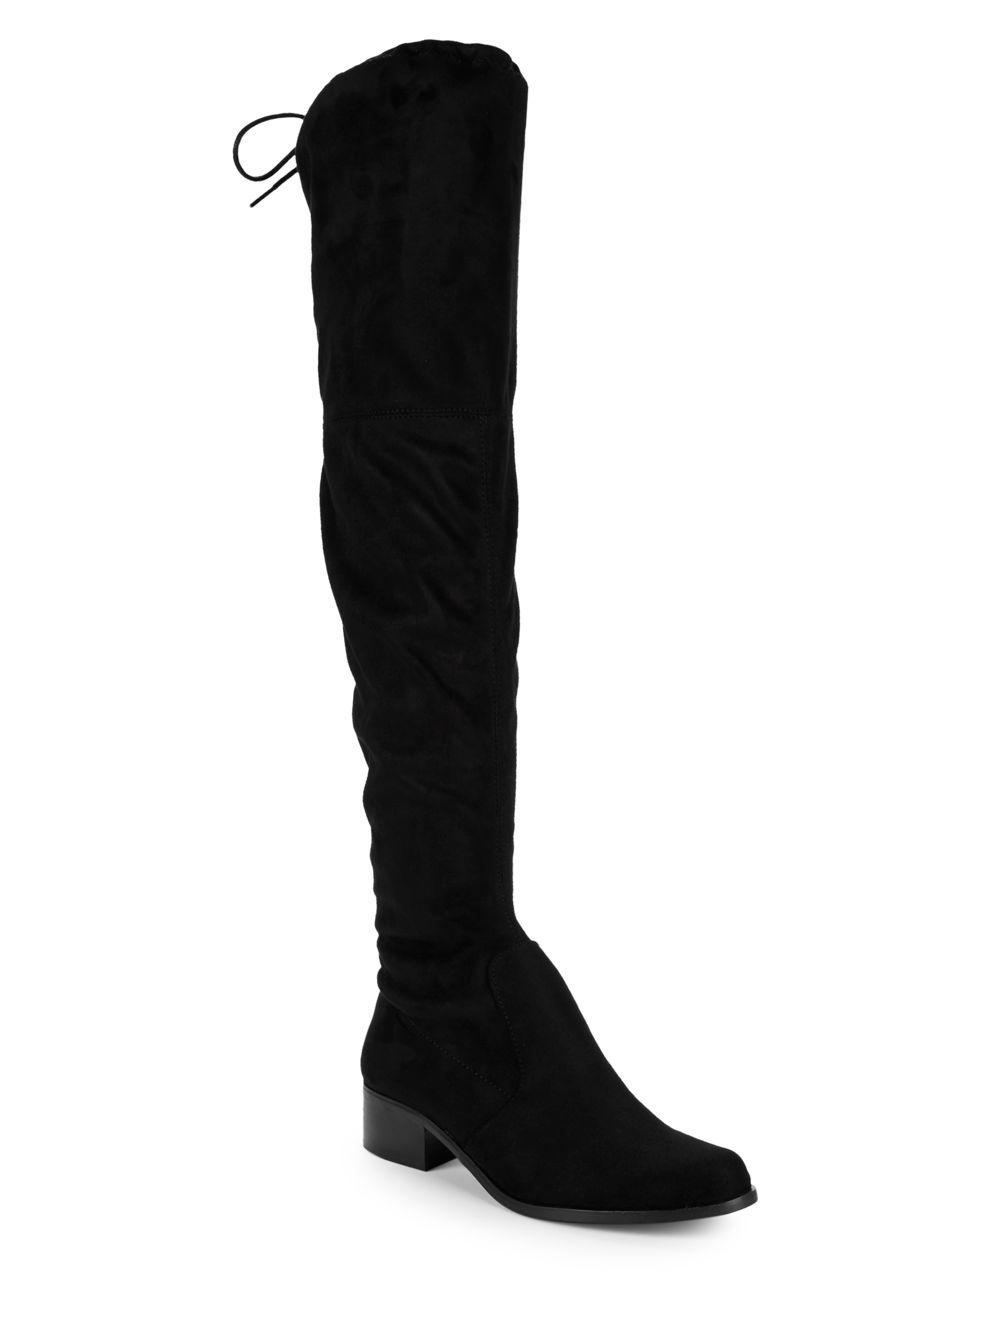 0ed48376a Charles David Groove-stretch Over-the-knee-boots in Black - Lyst